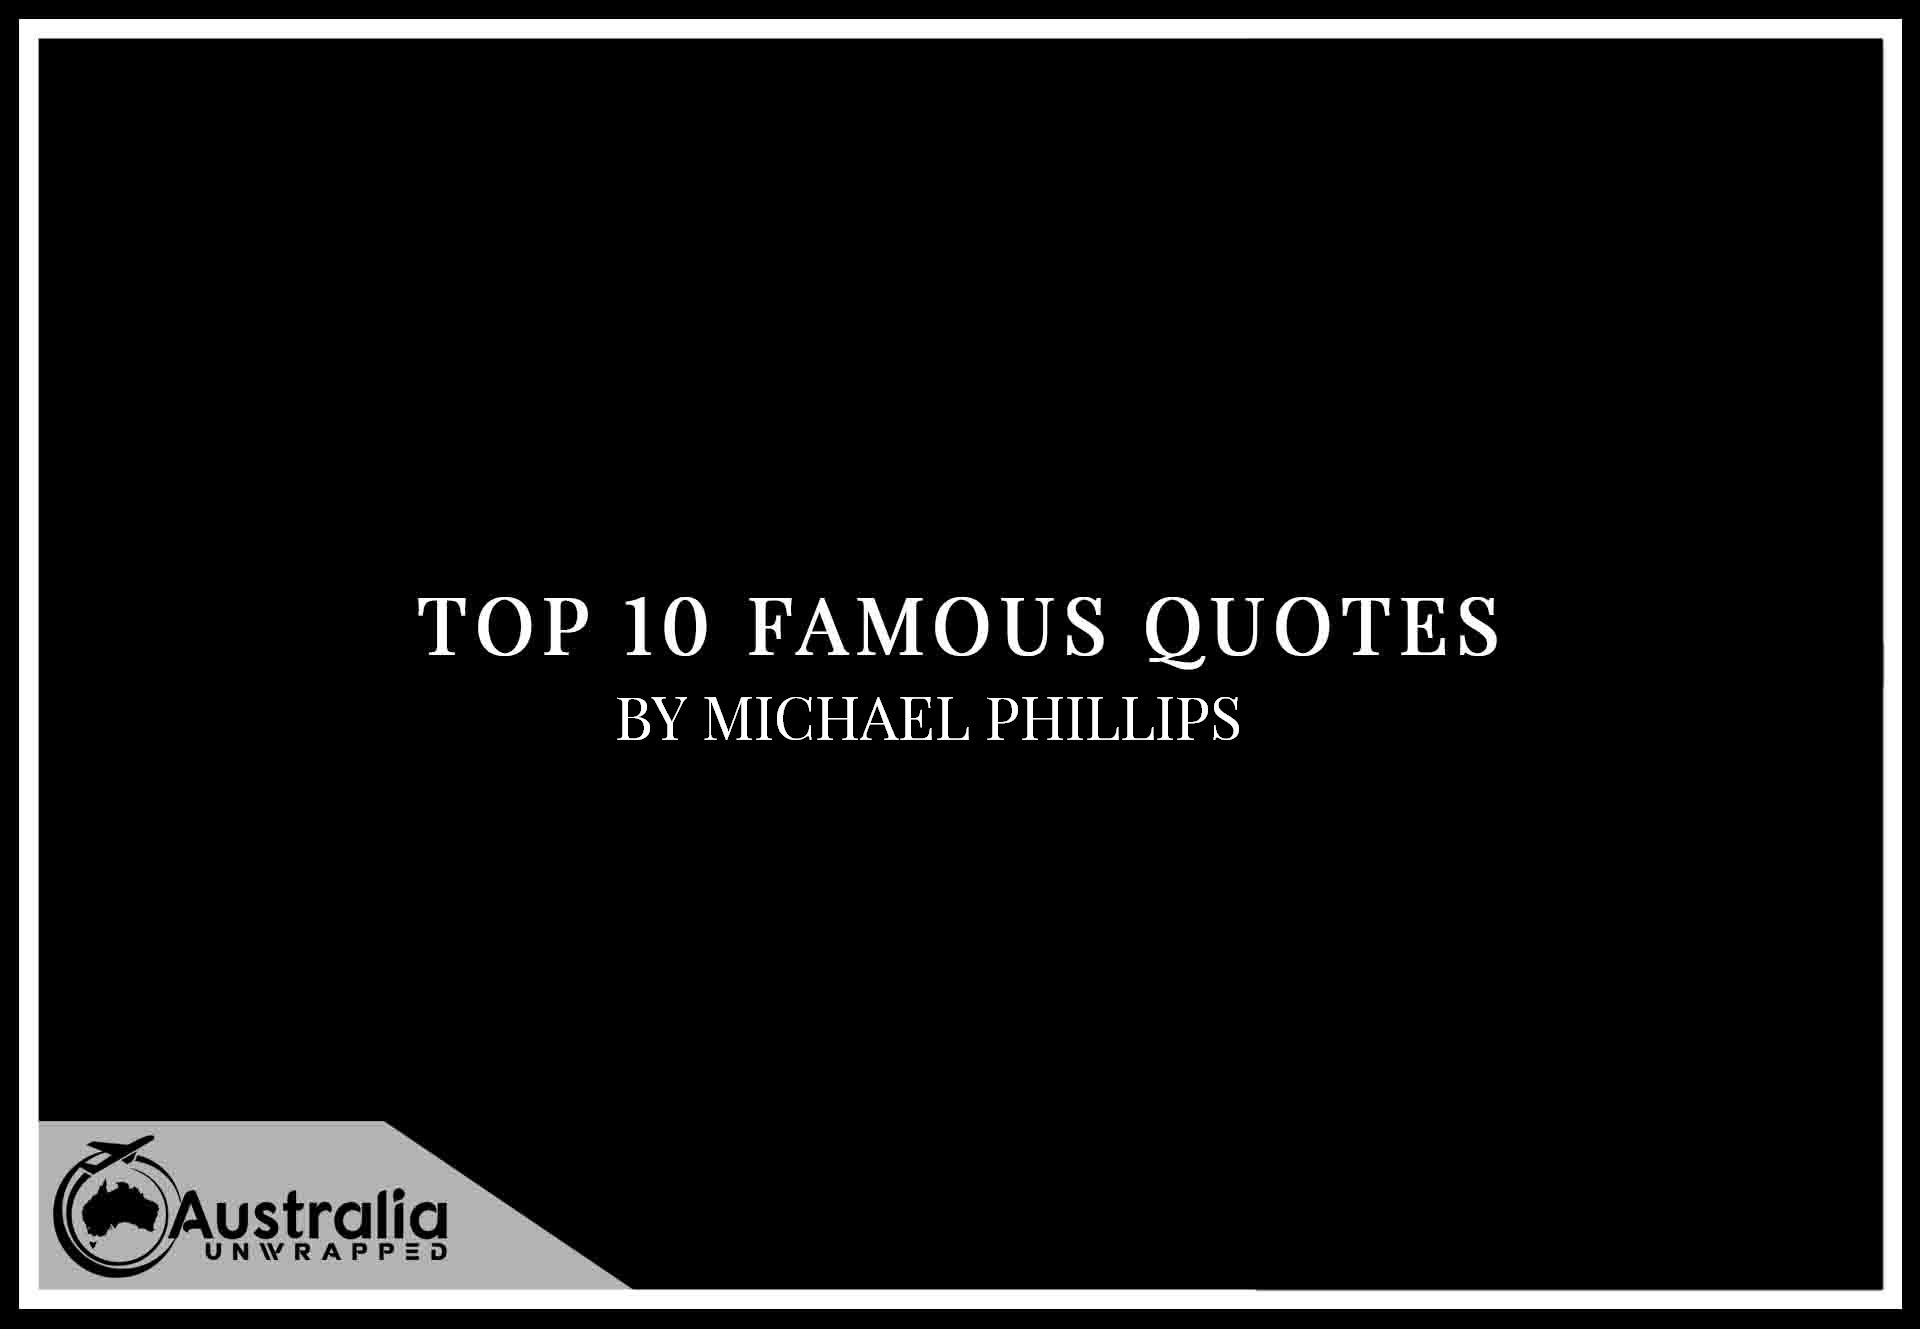 Top 10 Famous Quotes by Author Michael Phillips